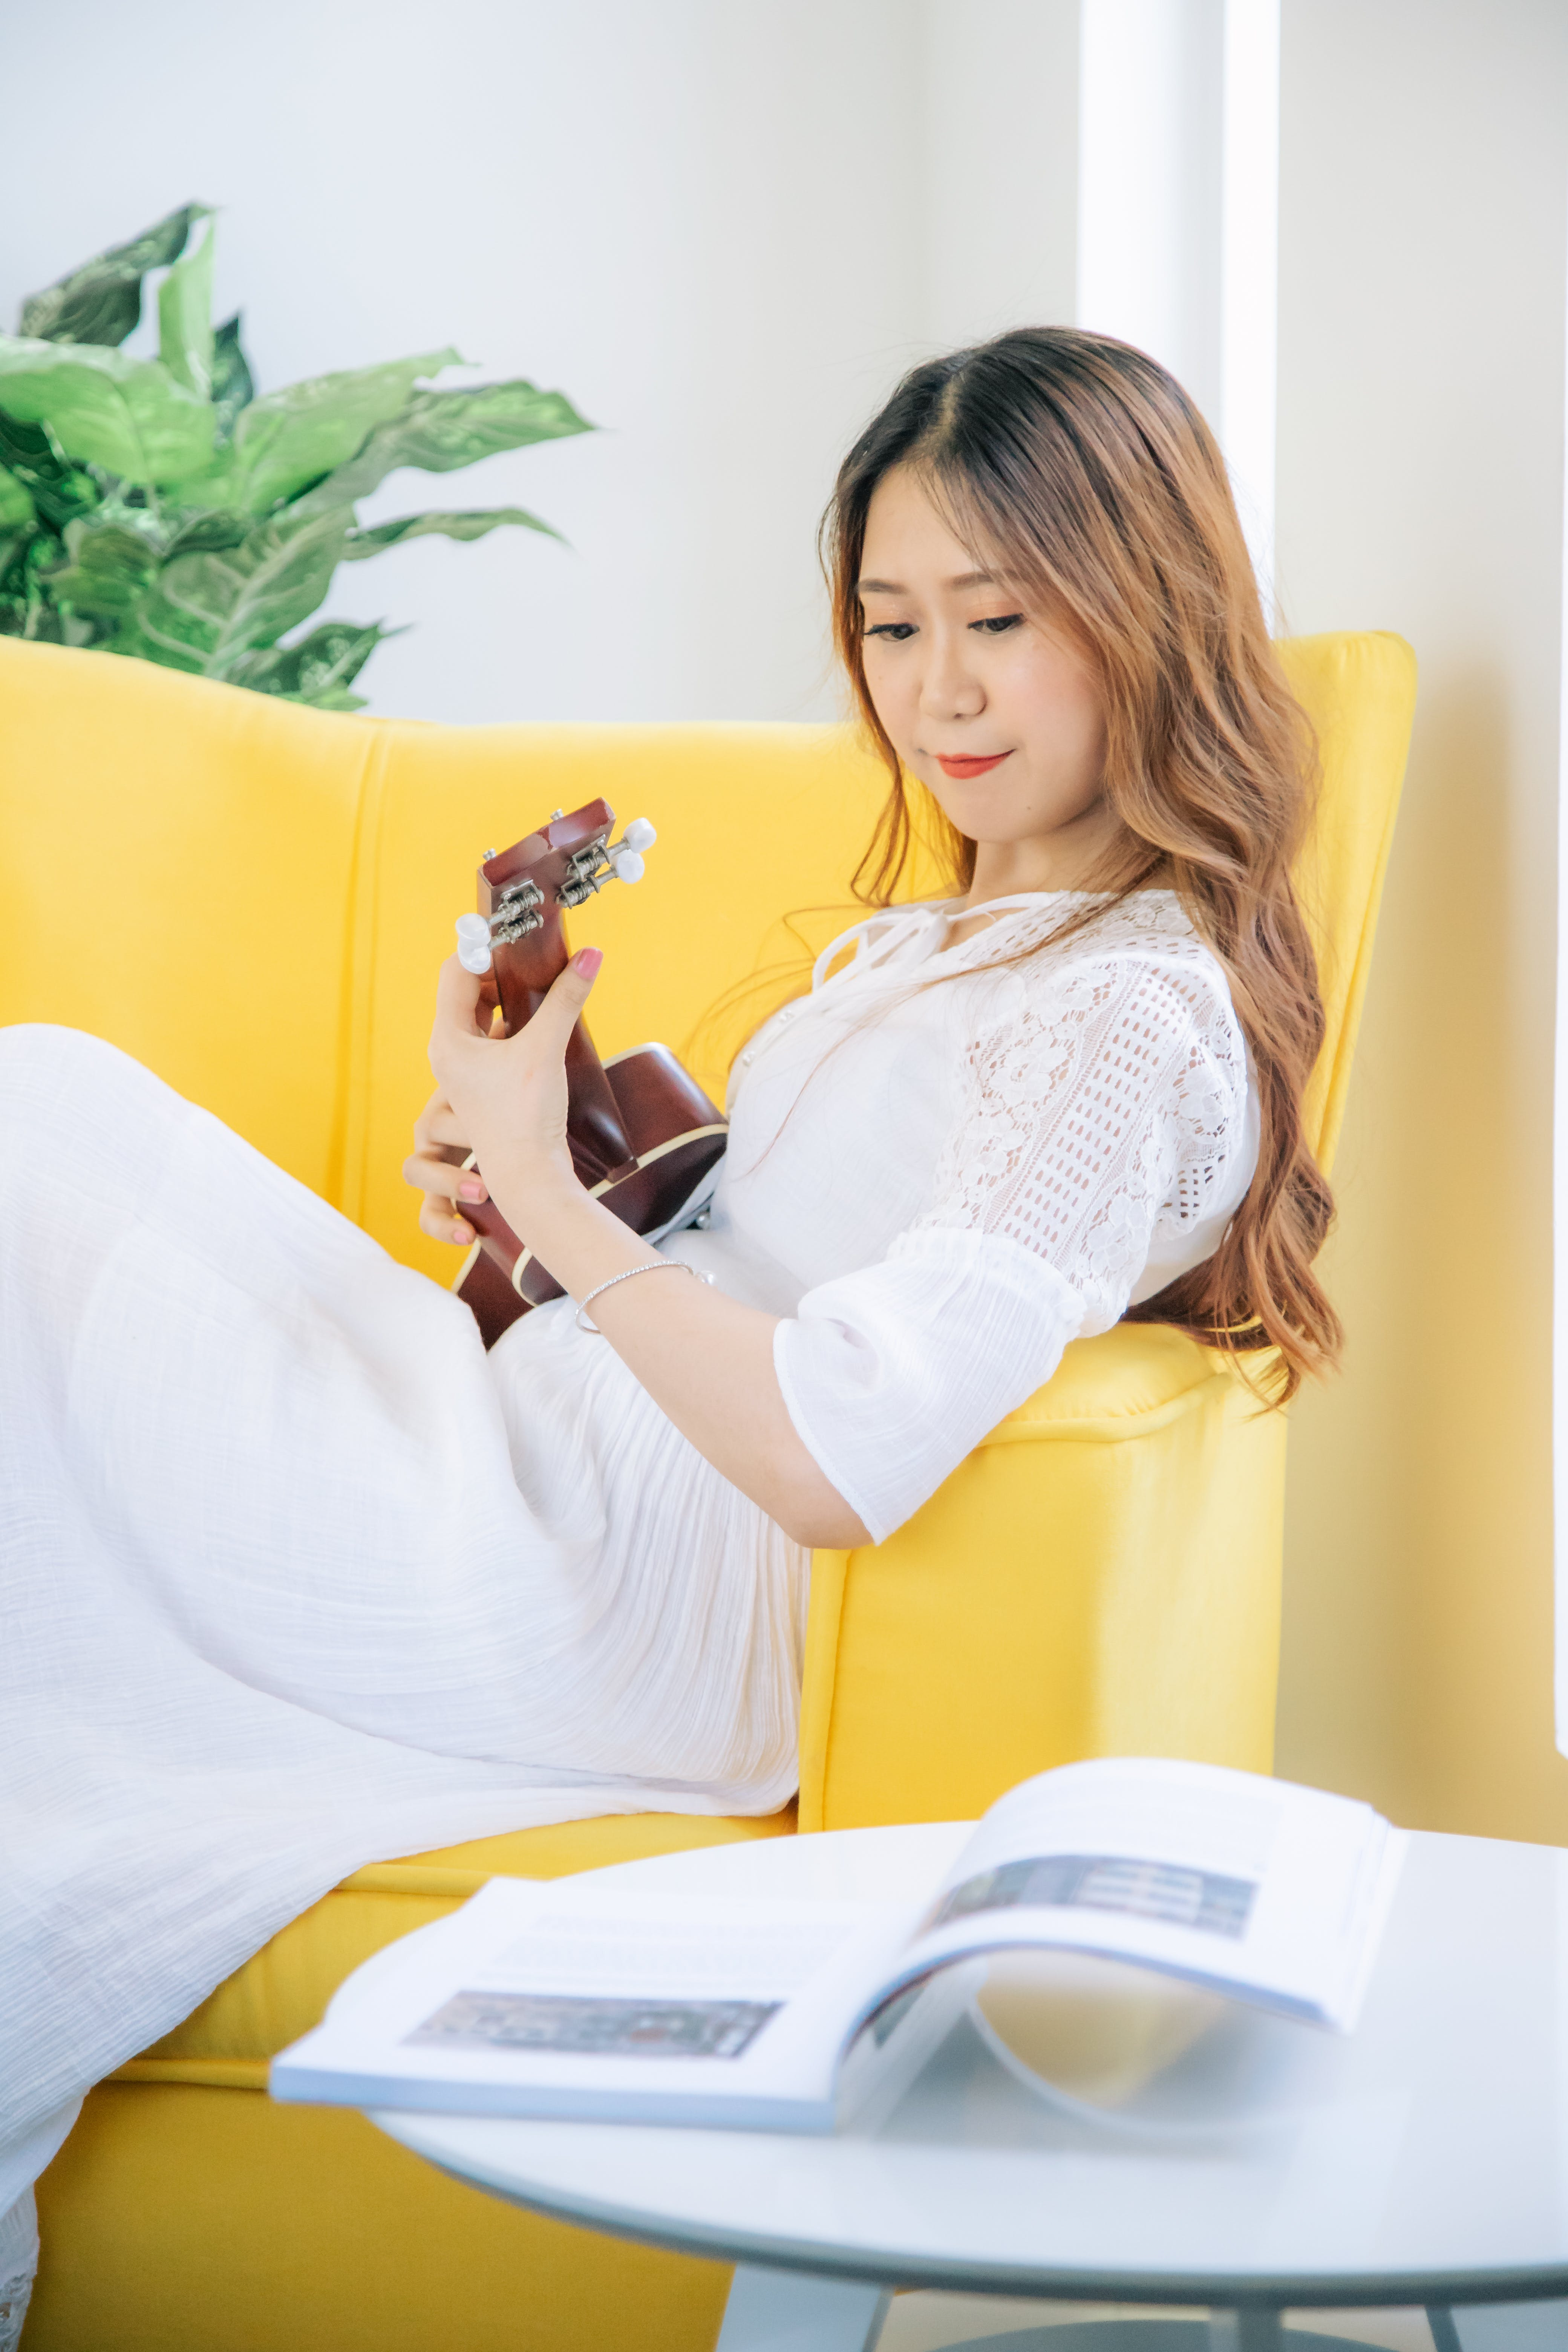 Woman Sitting on Sofa While Playing Ukulele